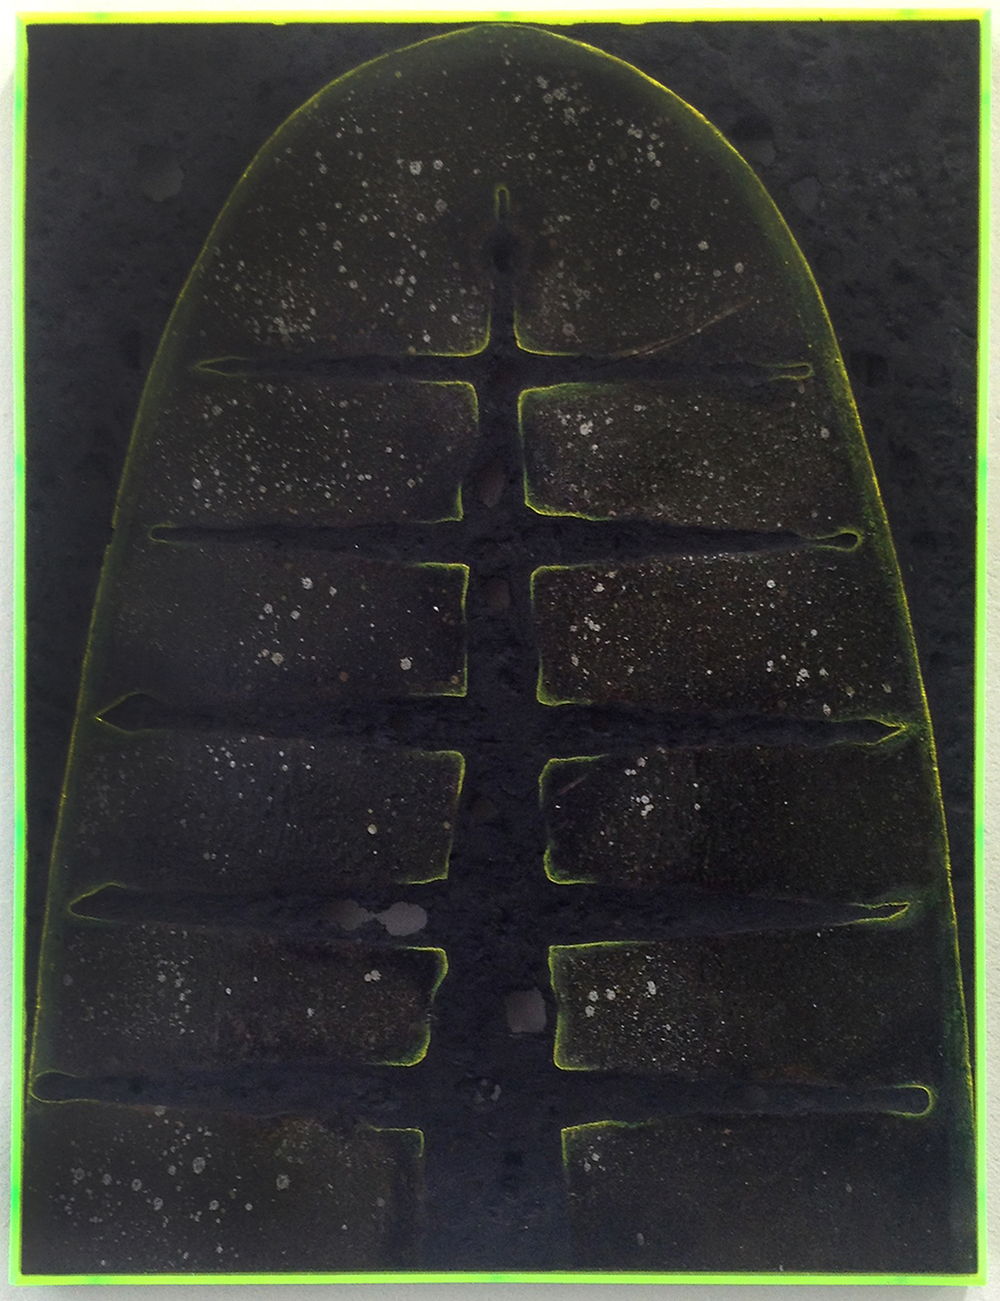 Davide Zucco ,  Black shape #3 , 2016, spray paint, pigment, burns, varnish, oil paint, plexiglass on wood, 18 x 14 inches